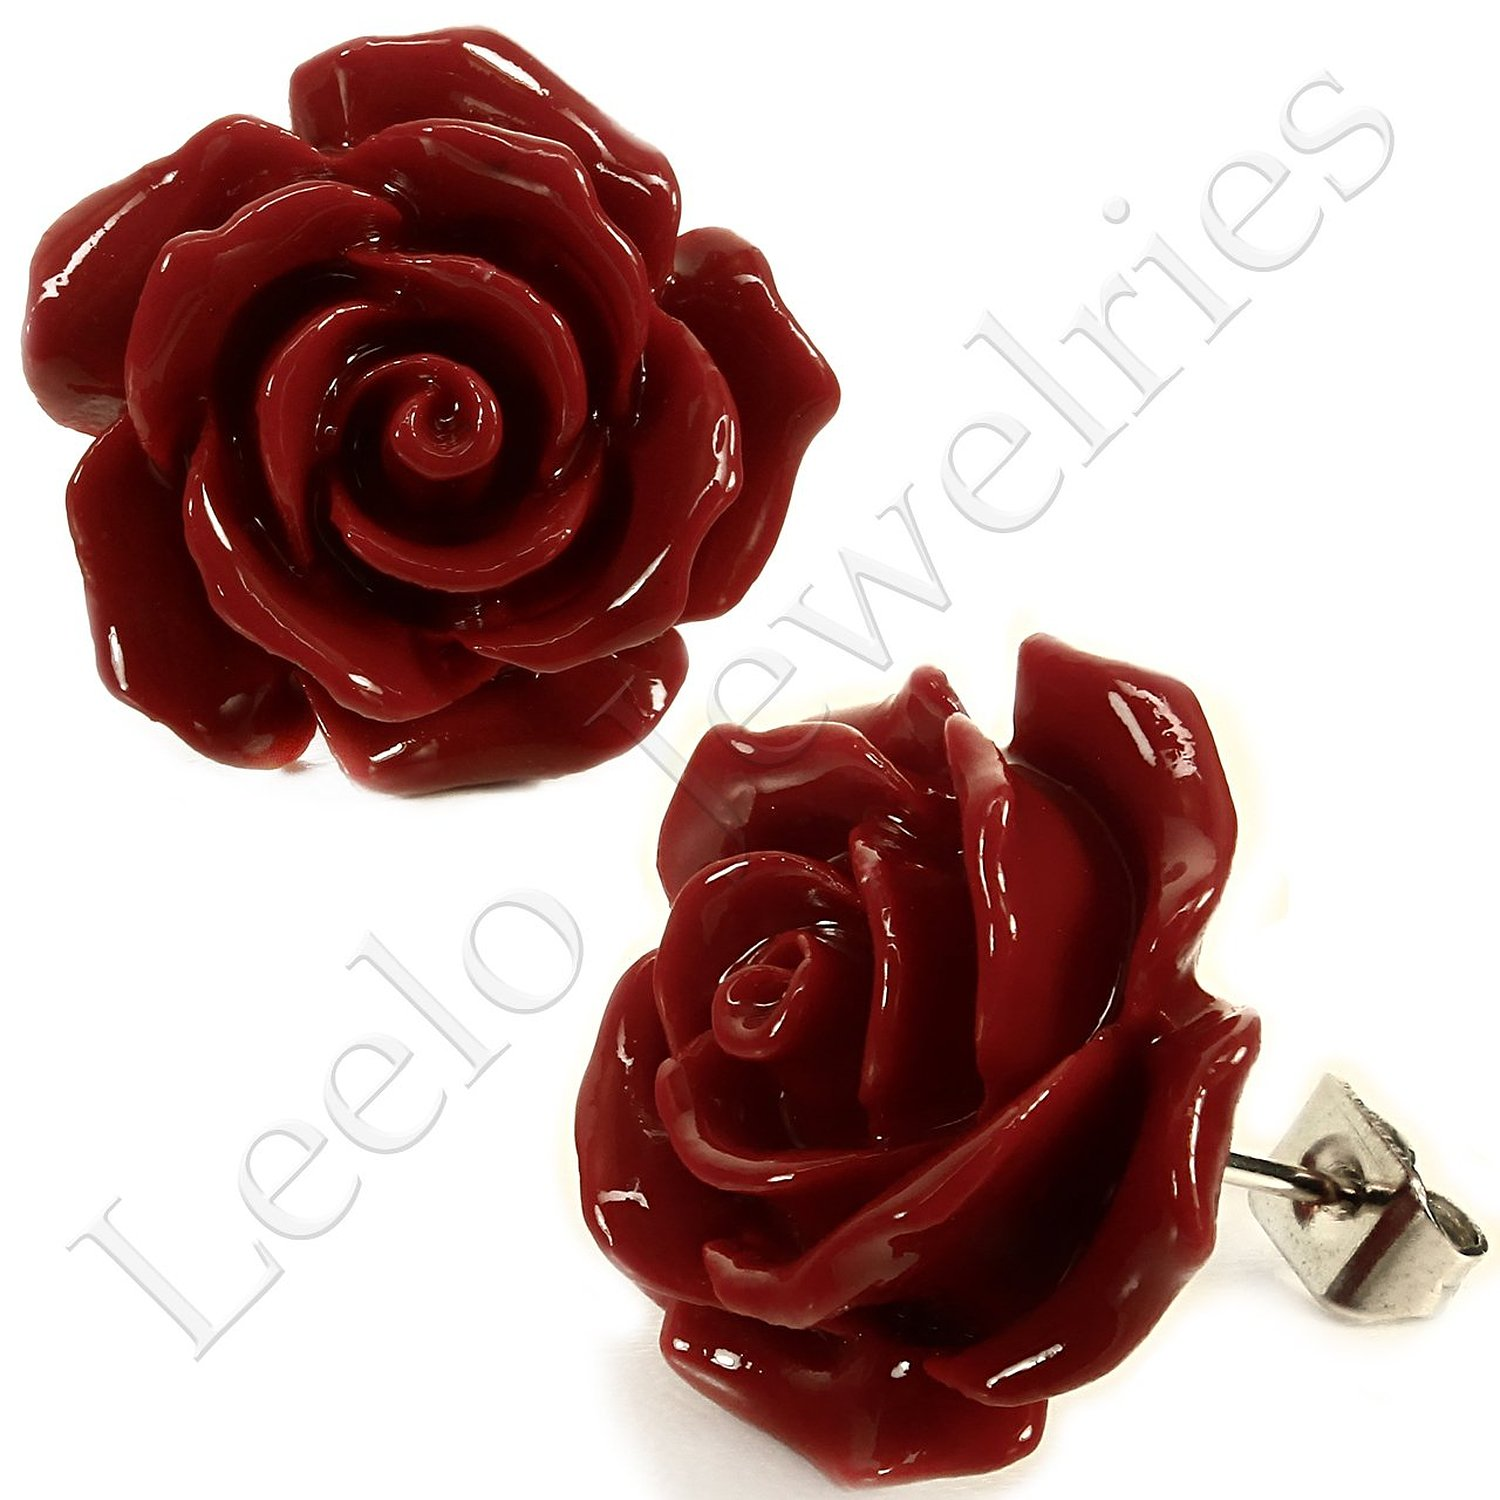 by original black gold taylorblack rose earrings product taylor delicate stud